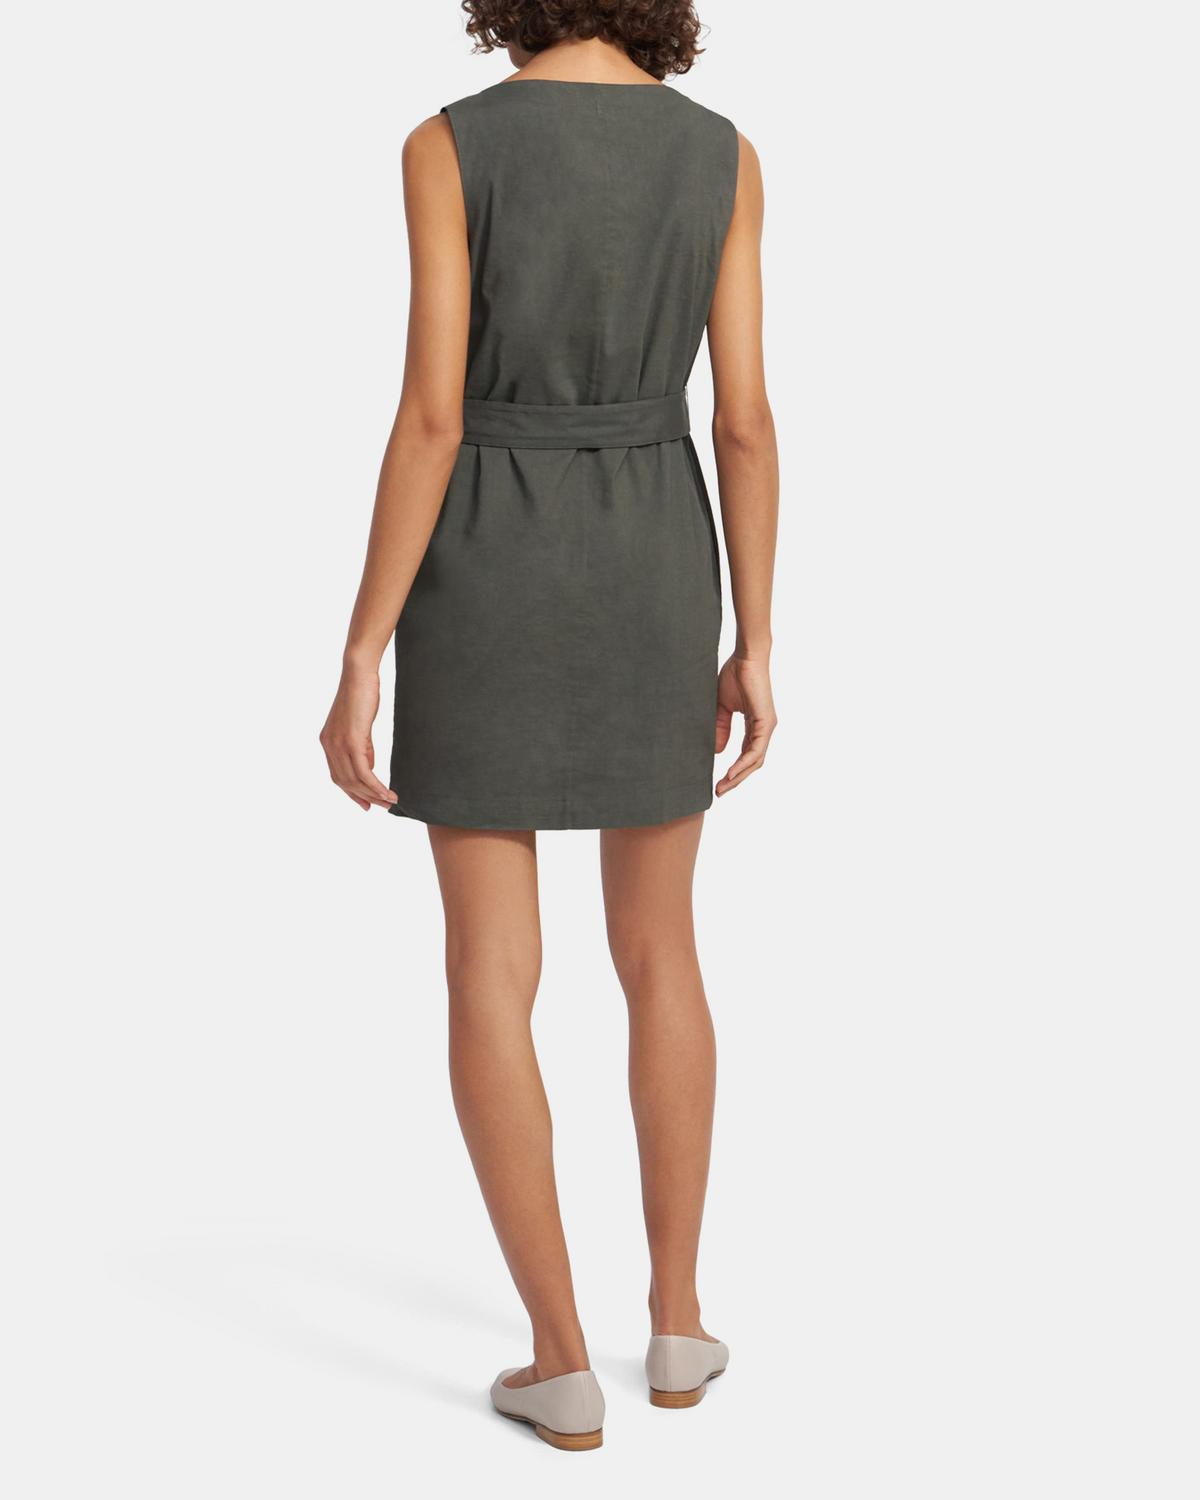 Belted Shift Dress in Good Linen